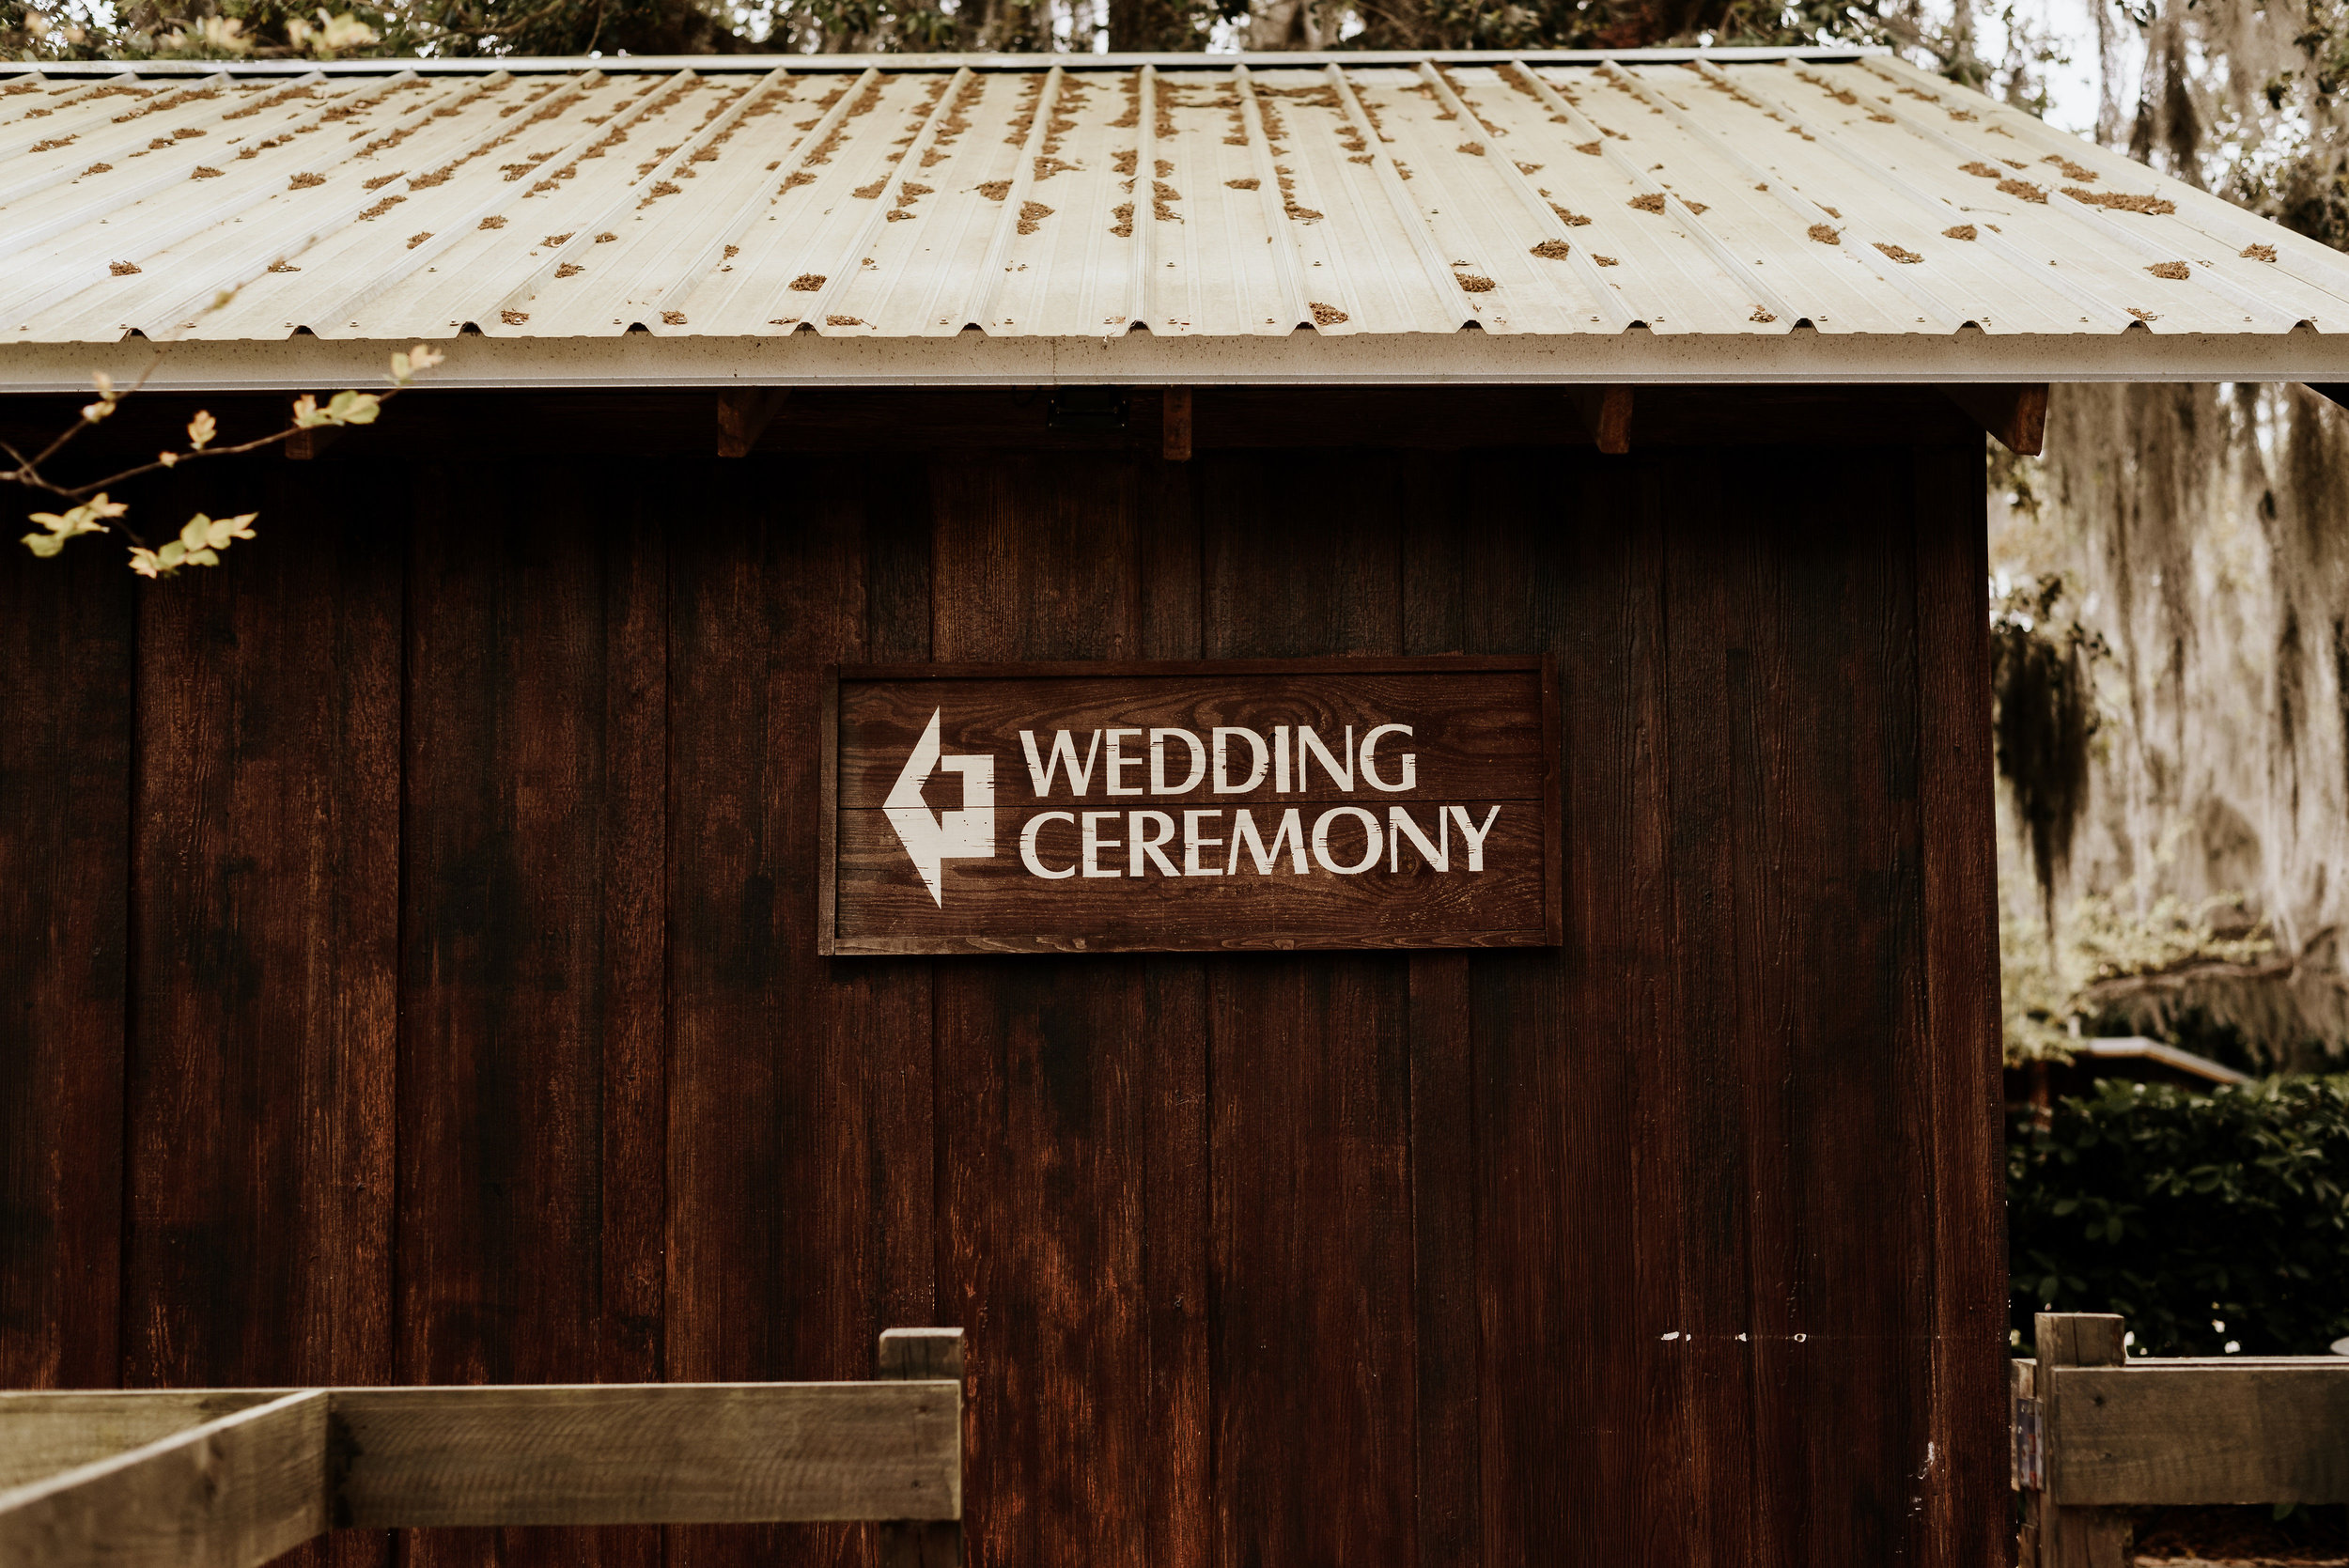 Mikenzi_Brad_Wedding_The_Delamater_House_New_Smyrna_Beach_Florida_Photography_by_V_4243.jpg